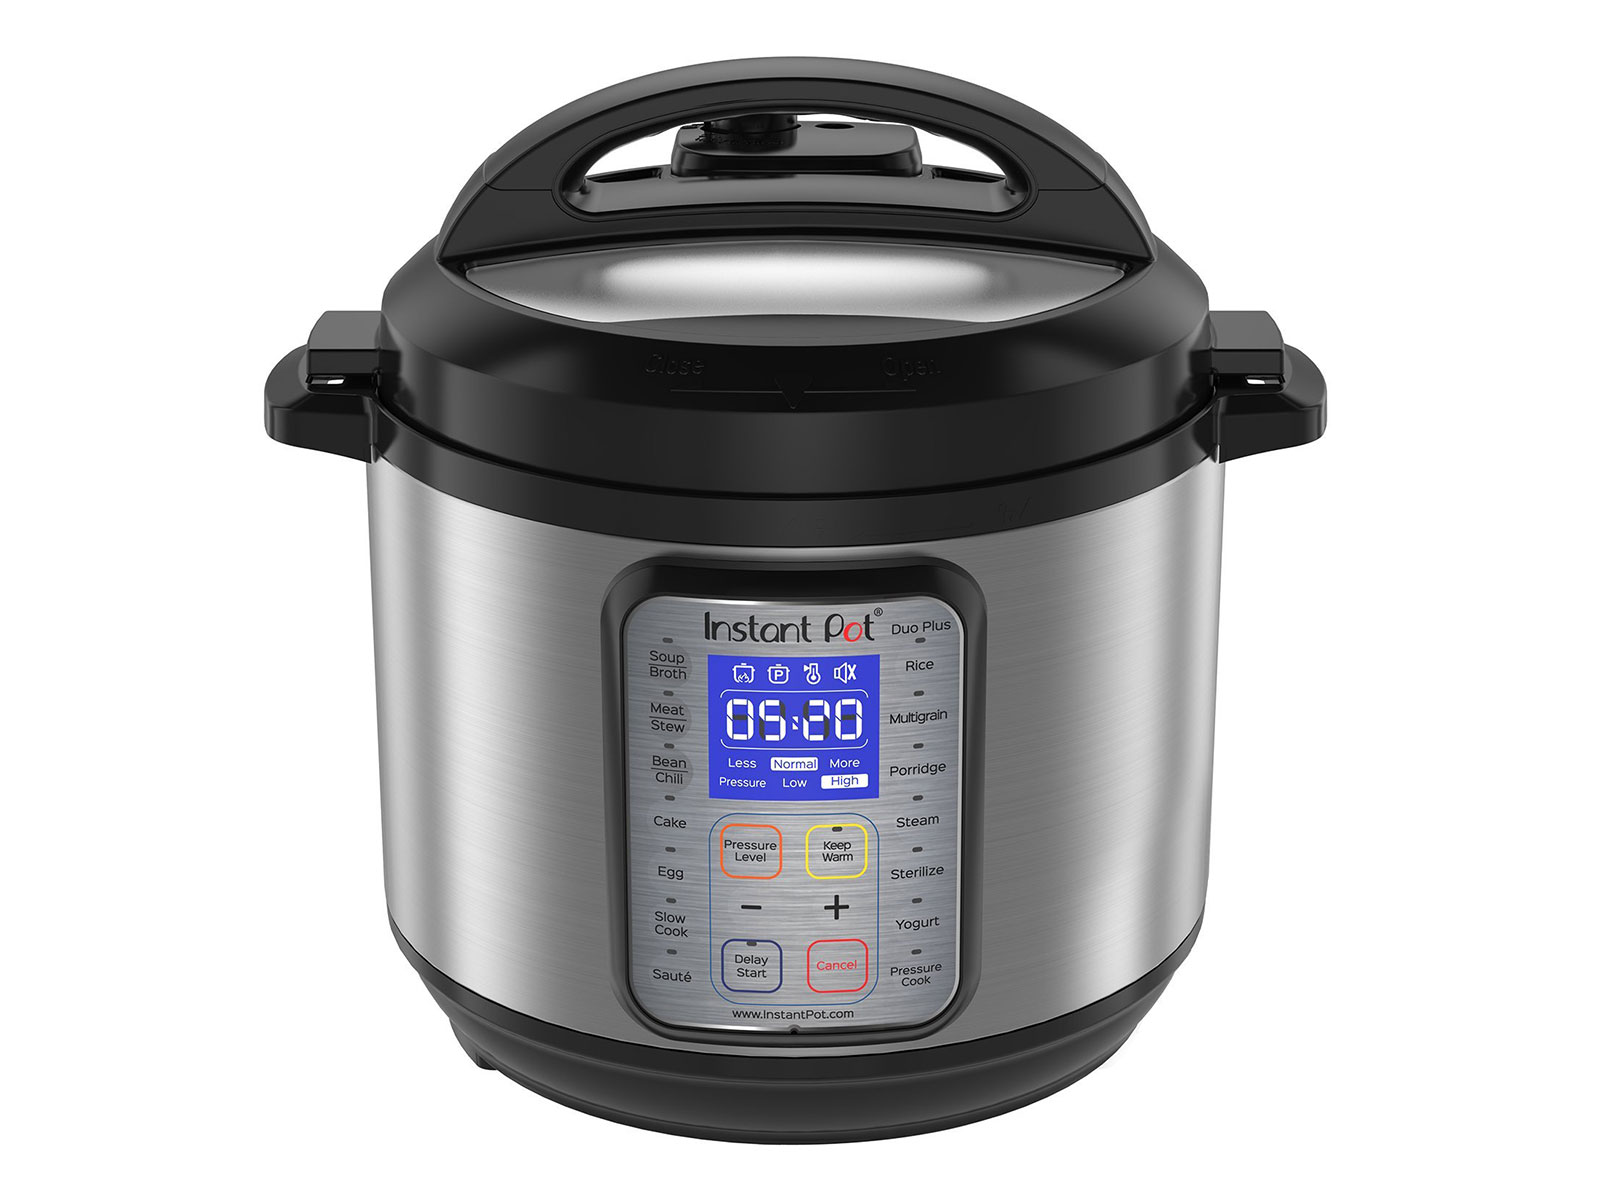 Instant Pot recalls melting cookers